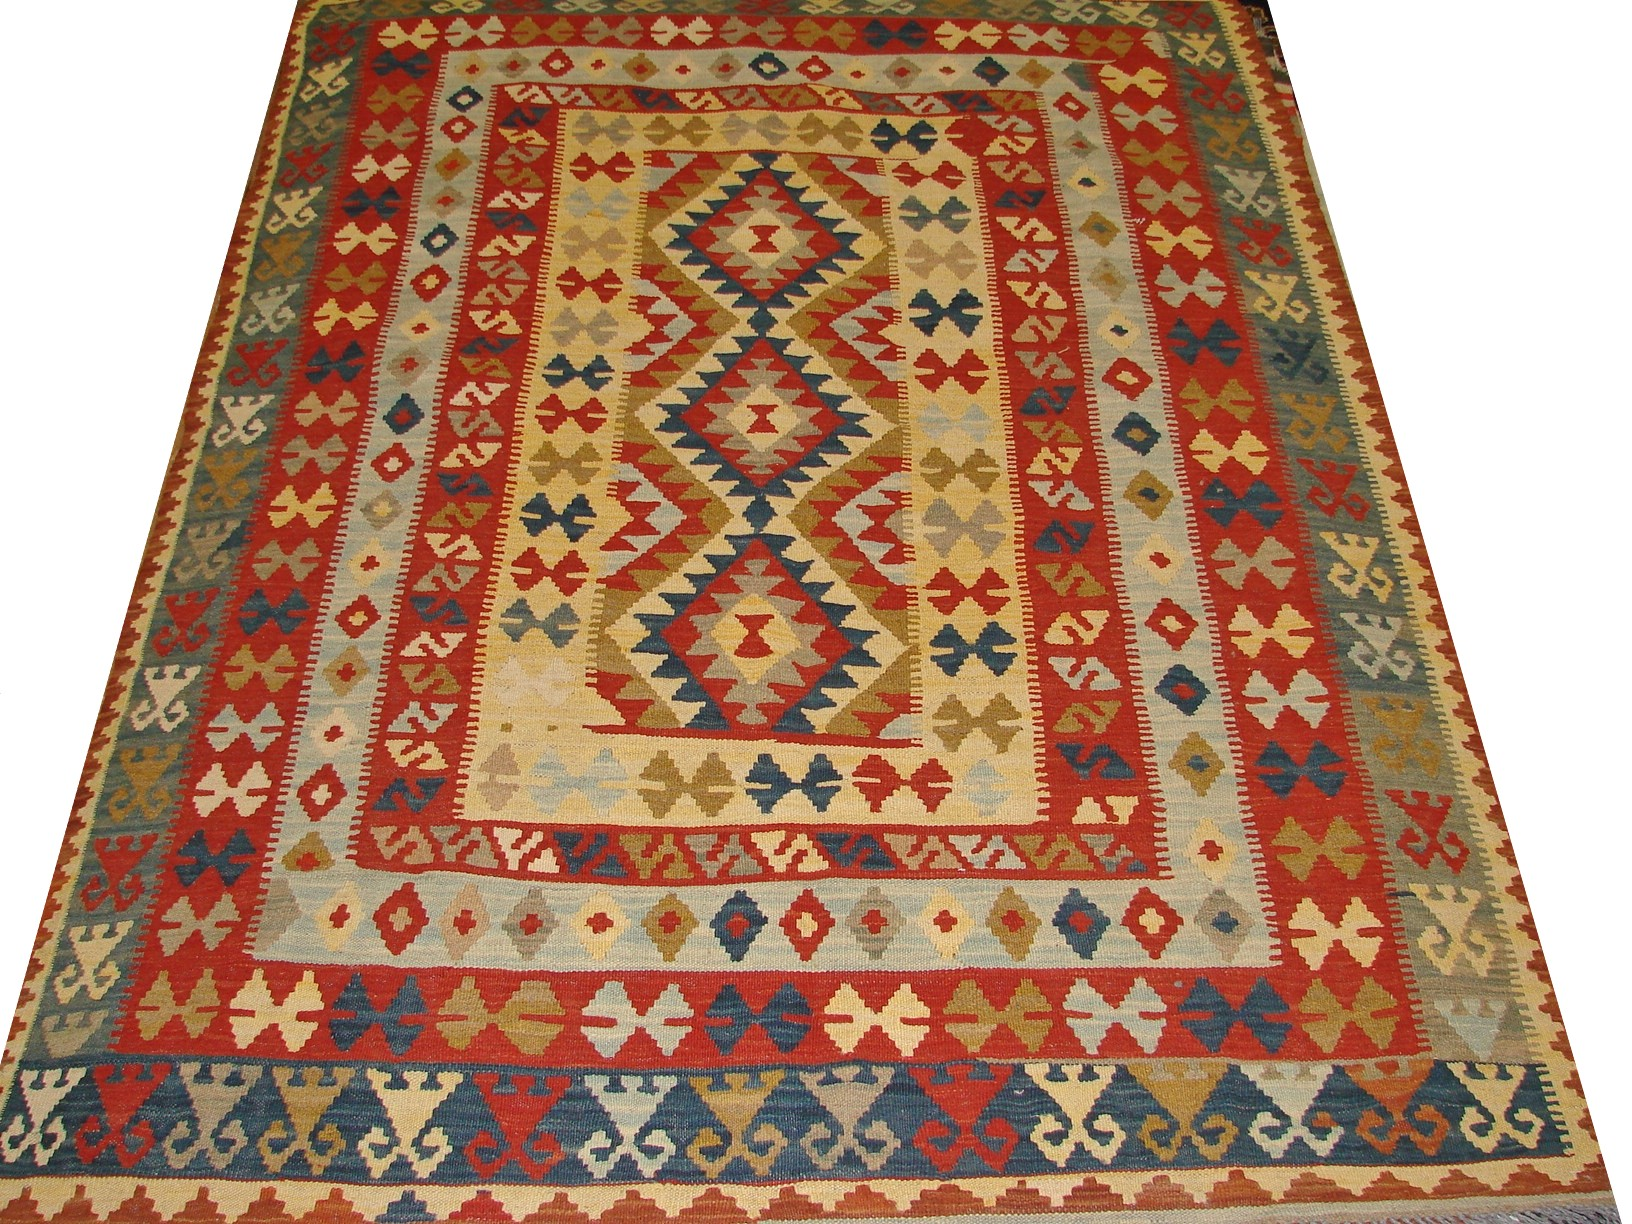 5x7/8 Flat Weave Hand Knotted Wool Area Rug - MR13330